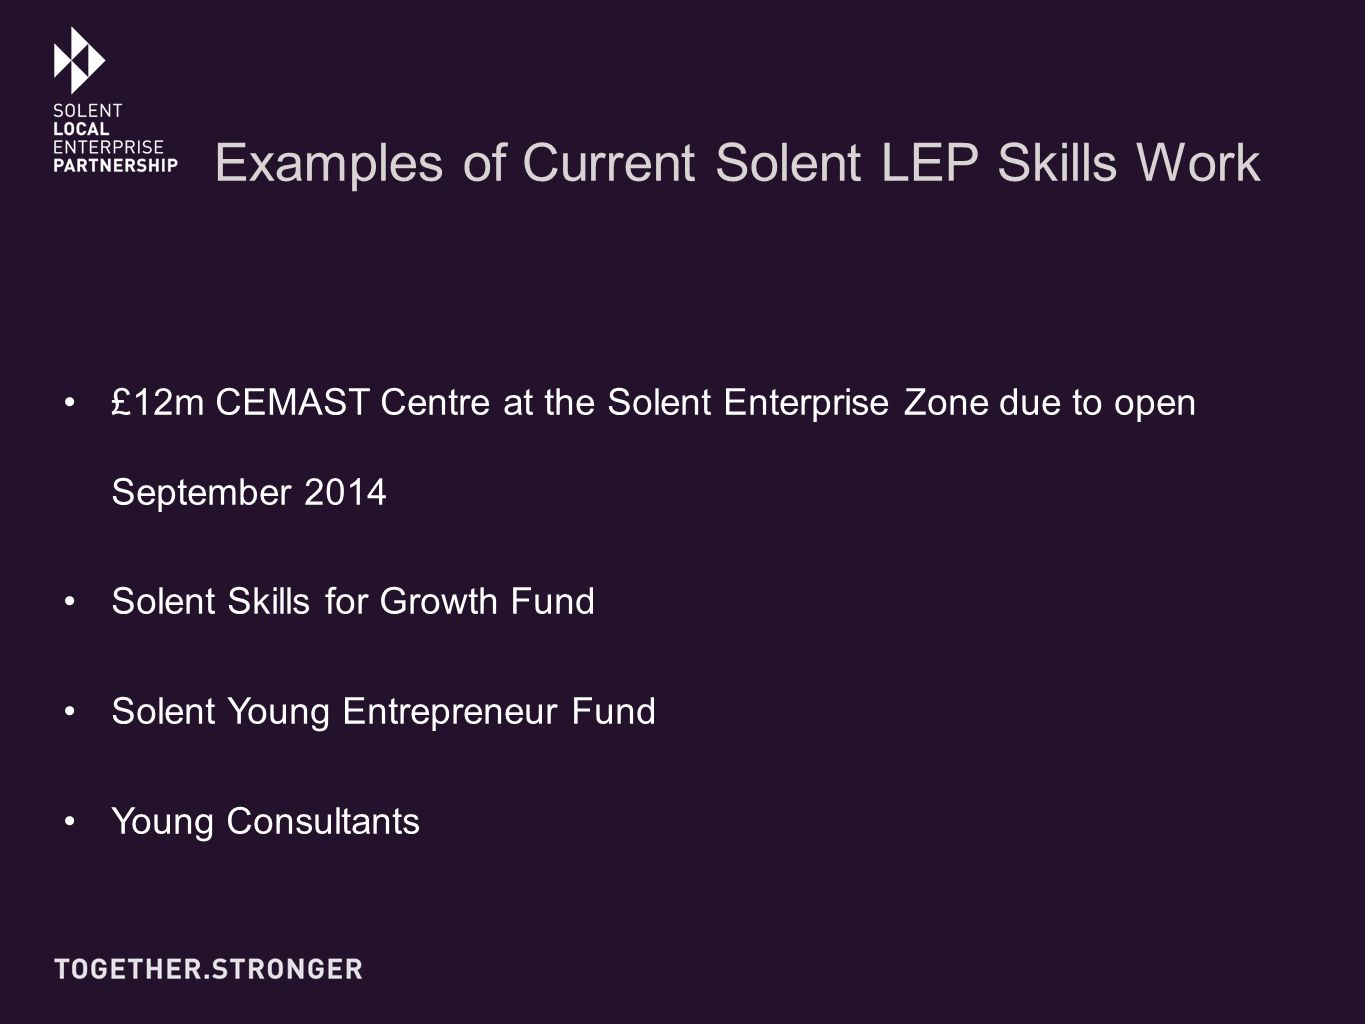 Examples of Current Solent LEP Skills Work £12m CEMAST Centre at the Solent Enterprise Zone due to open September 2014 Solent Skills for Growth Fund Solent Young Entrepreneur Fund Young Consultants